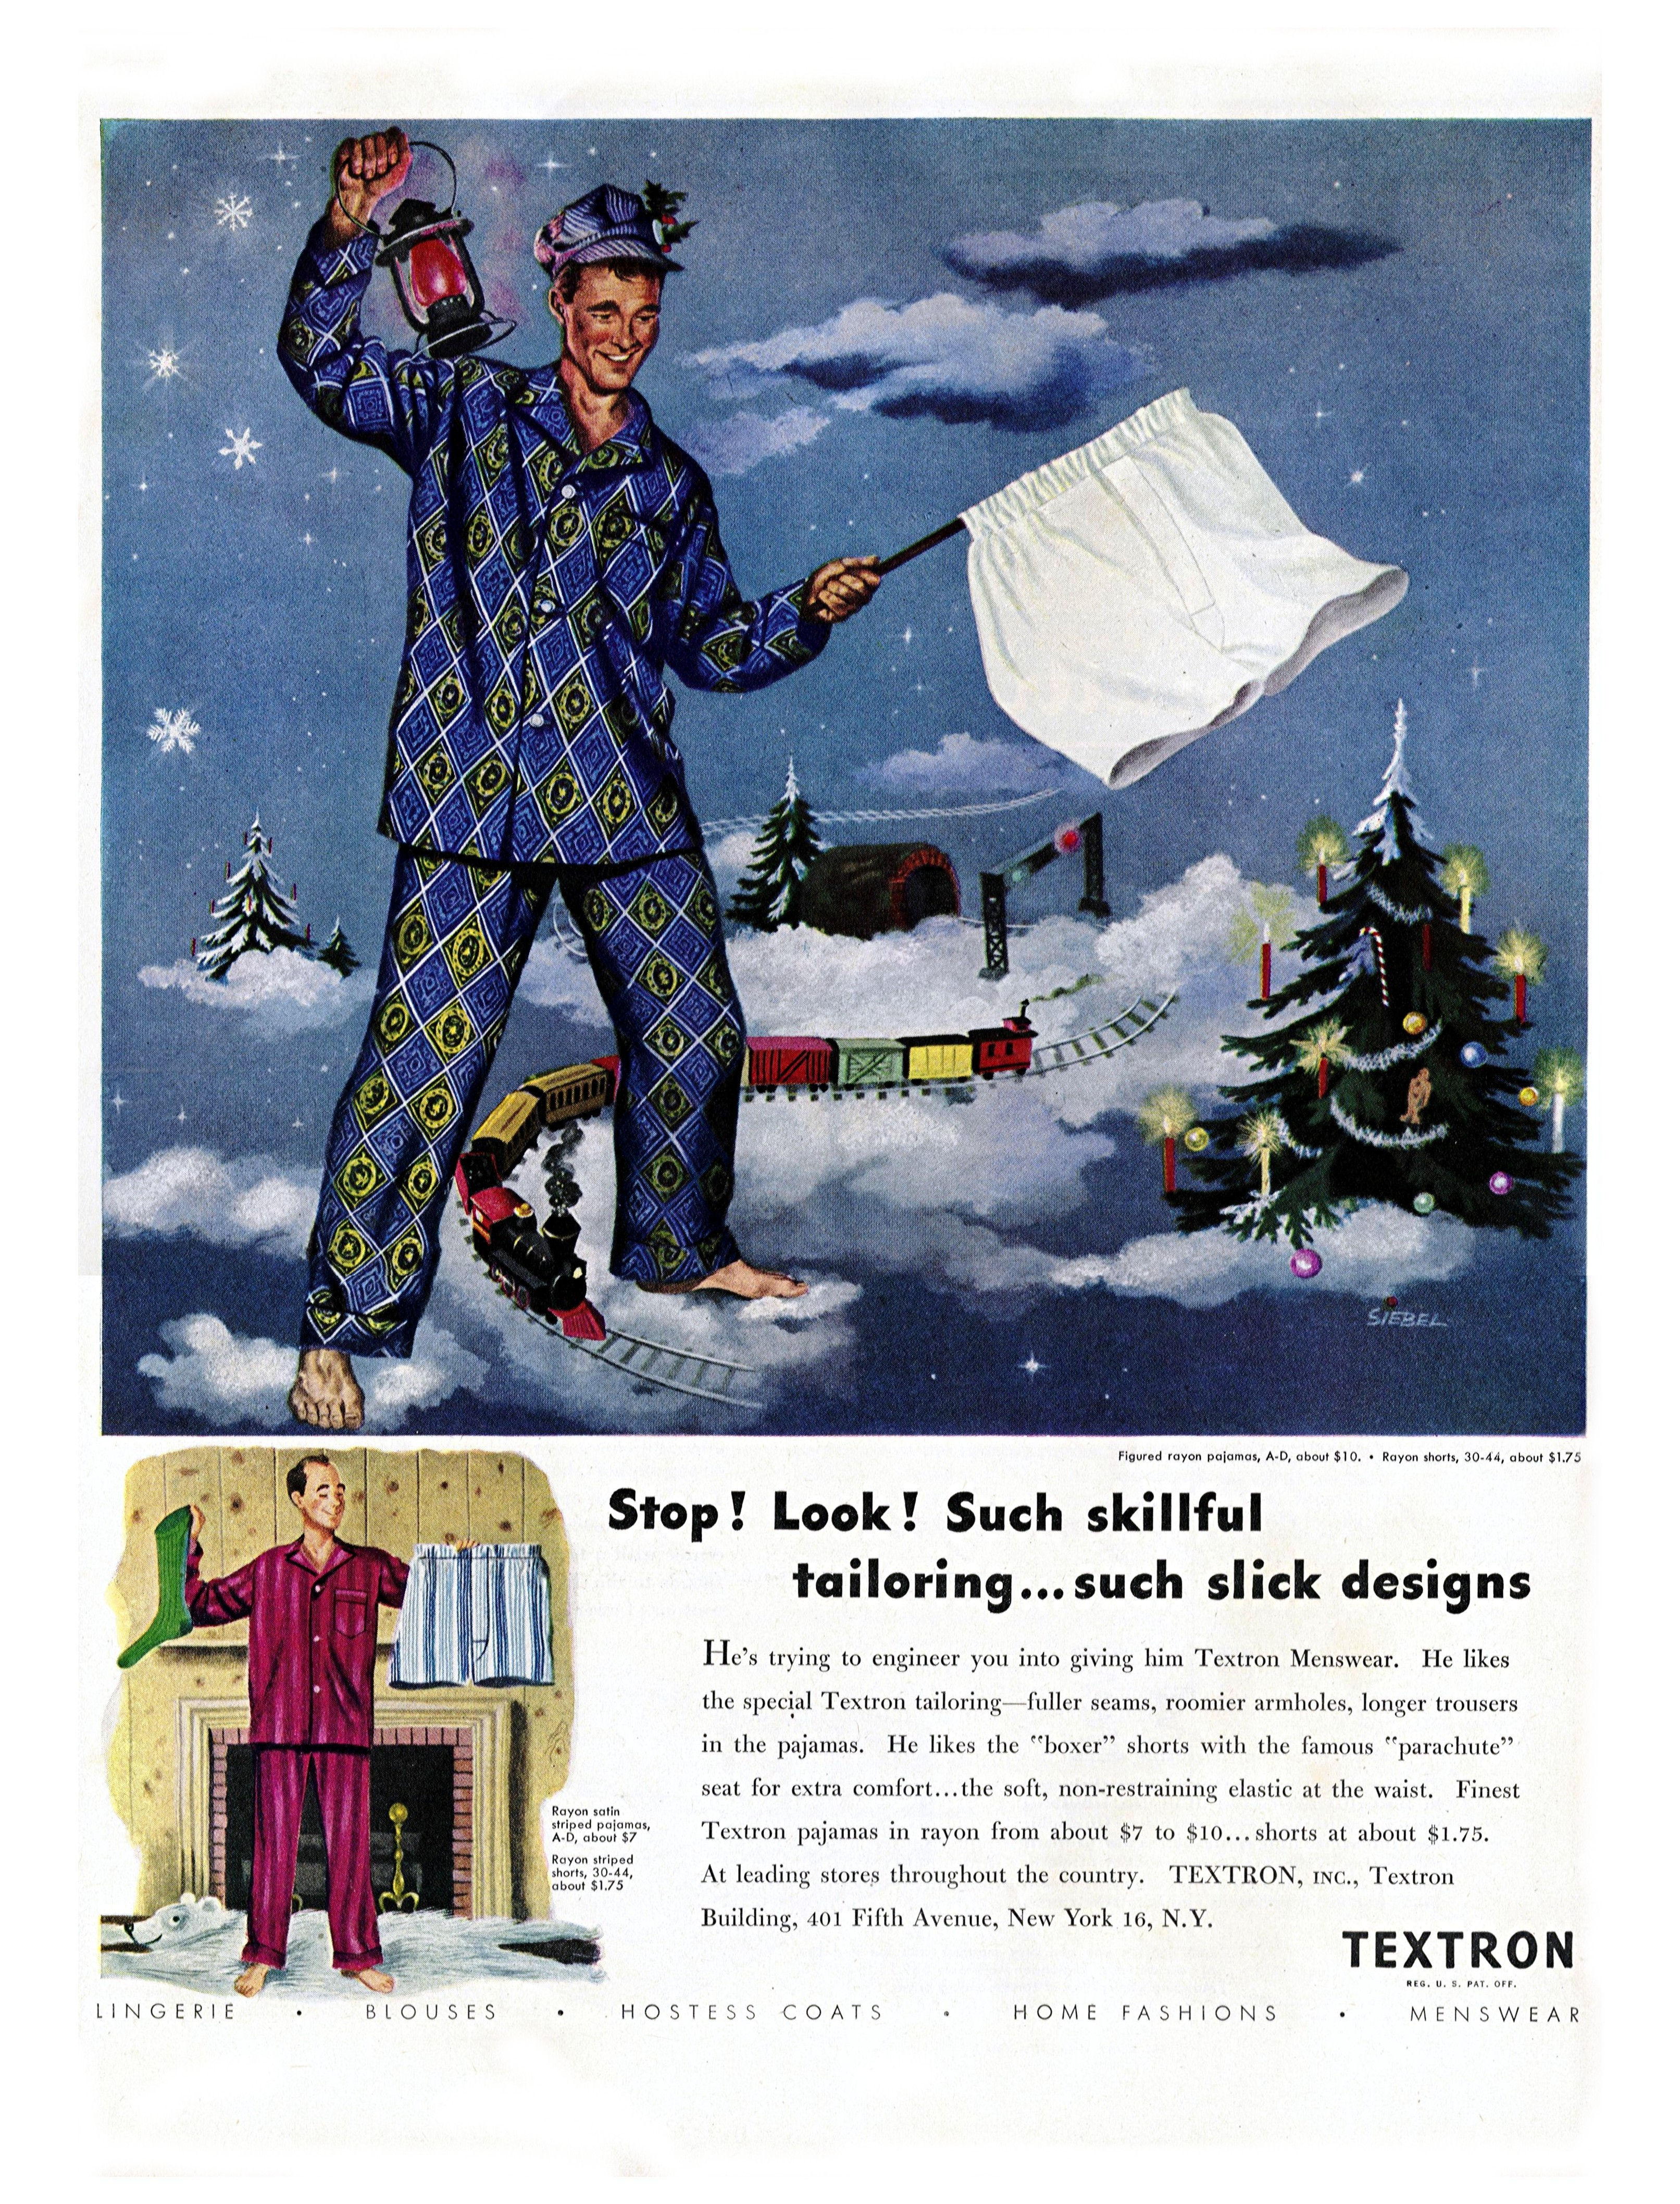 Textron - published in Life - December 1, 1947